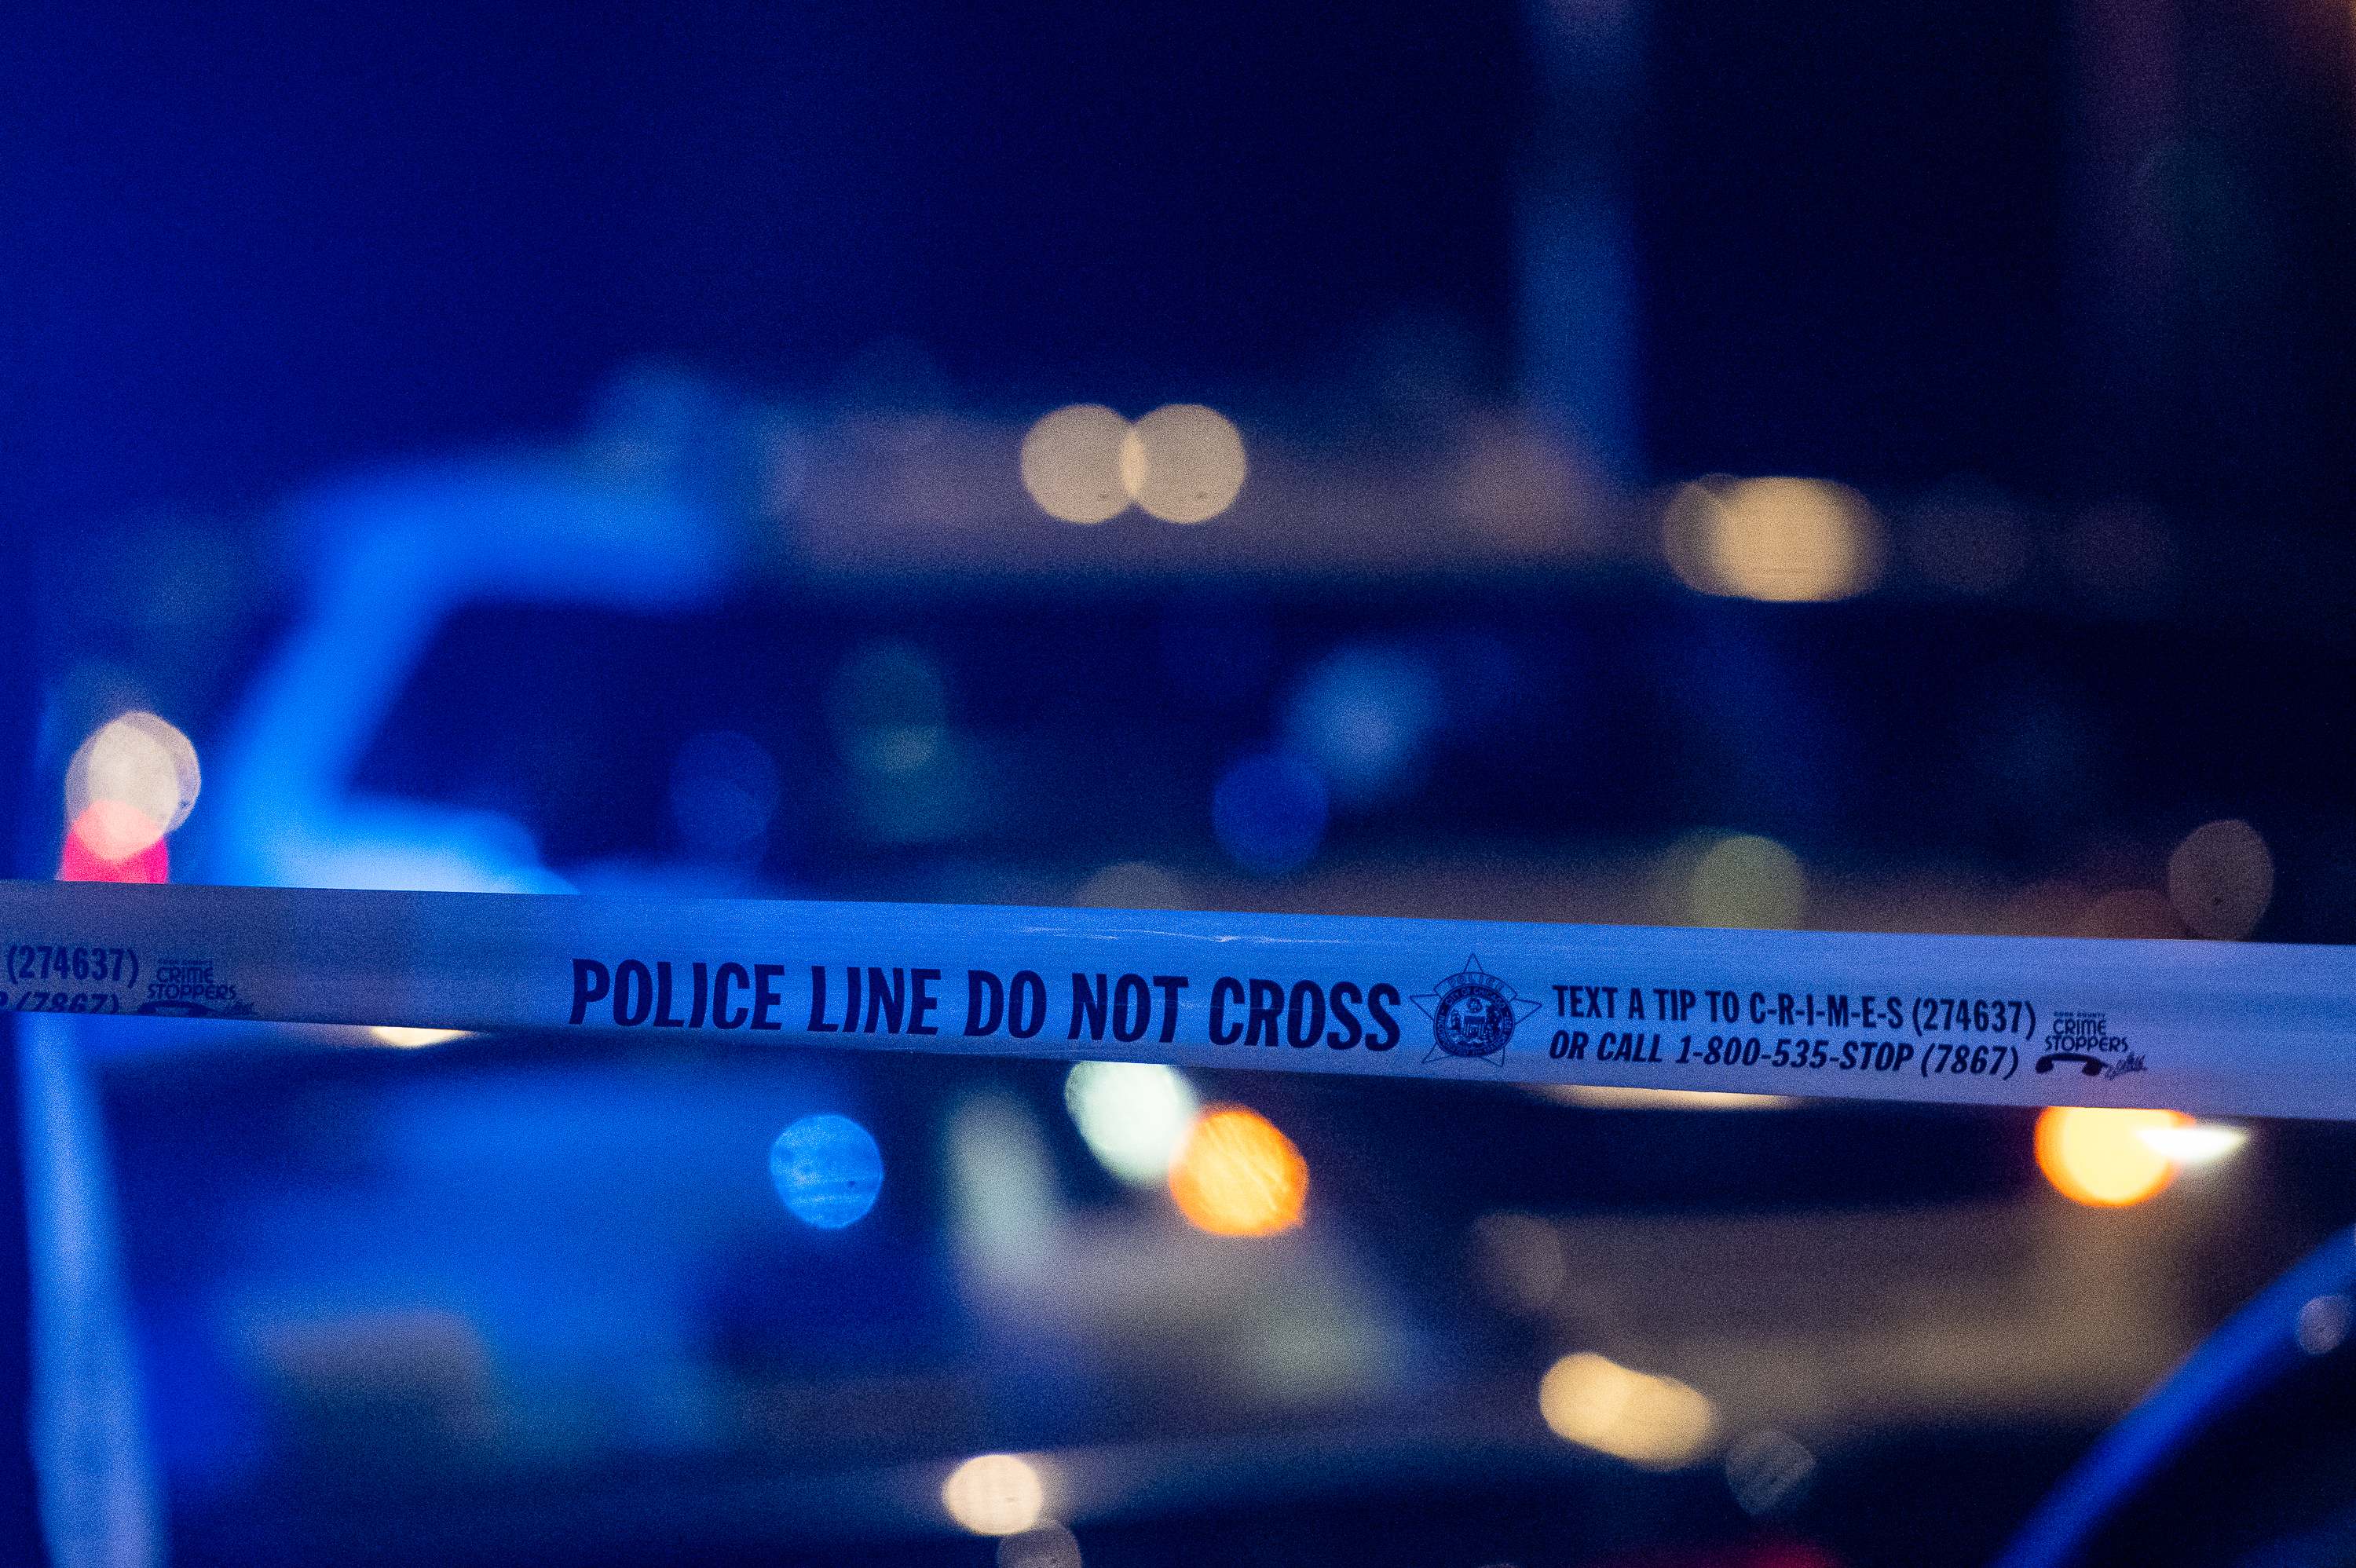 An 8-year-old girl suffered a graze wound to her head when a bullet flew through the window of an Englewood home June 27, 2020.